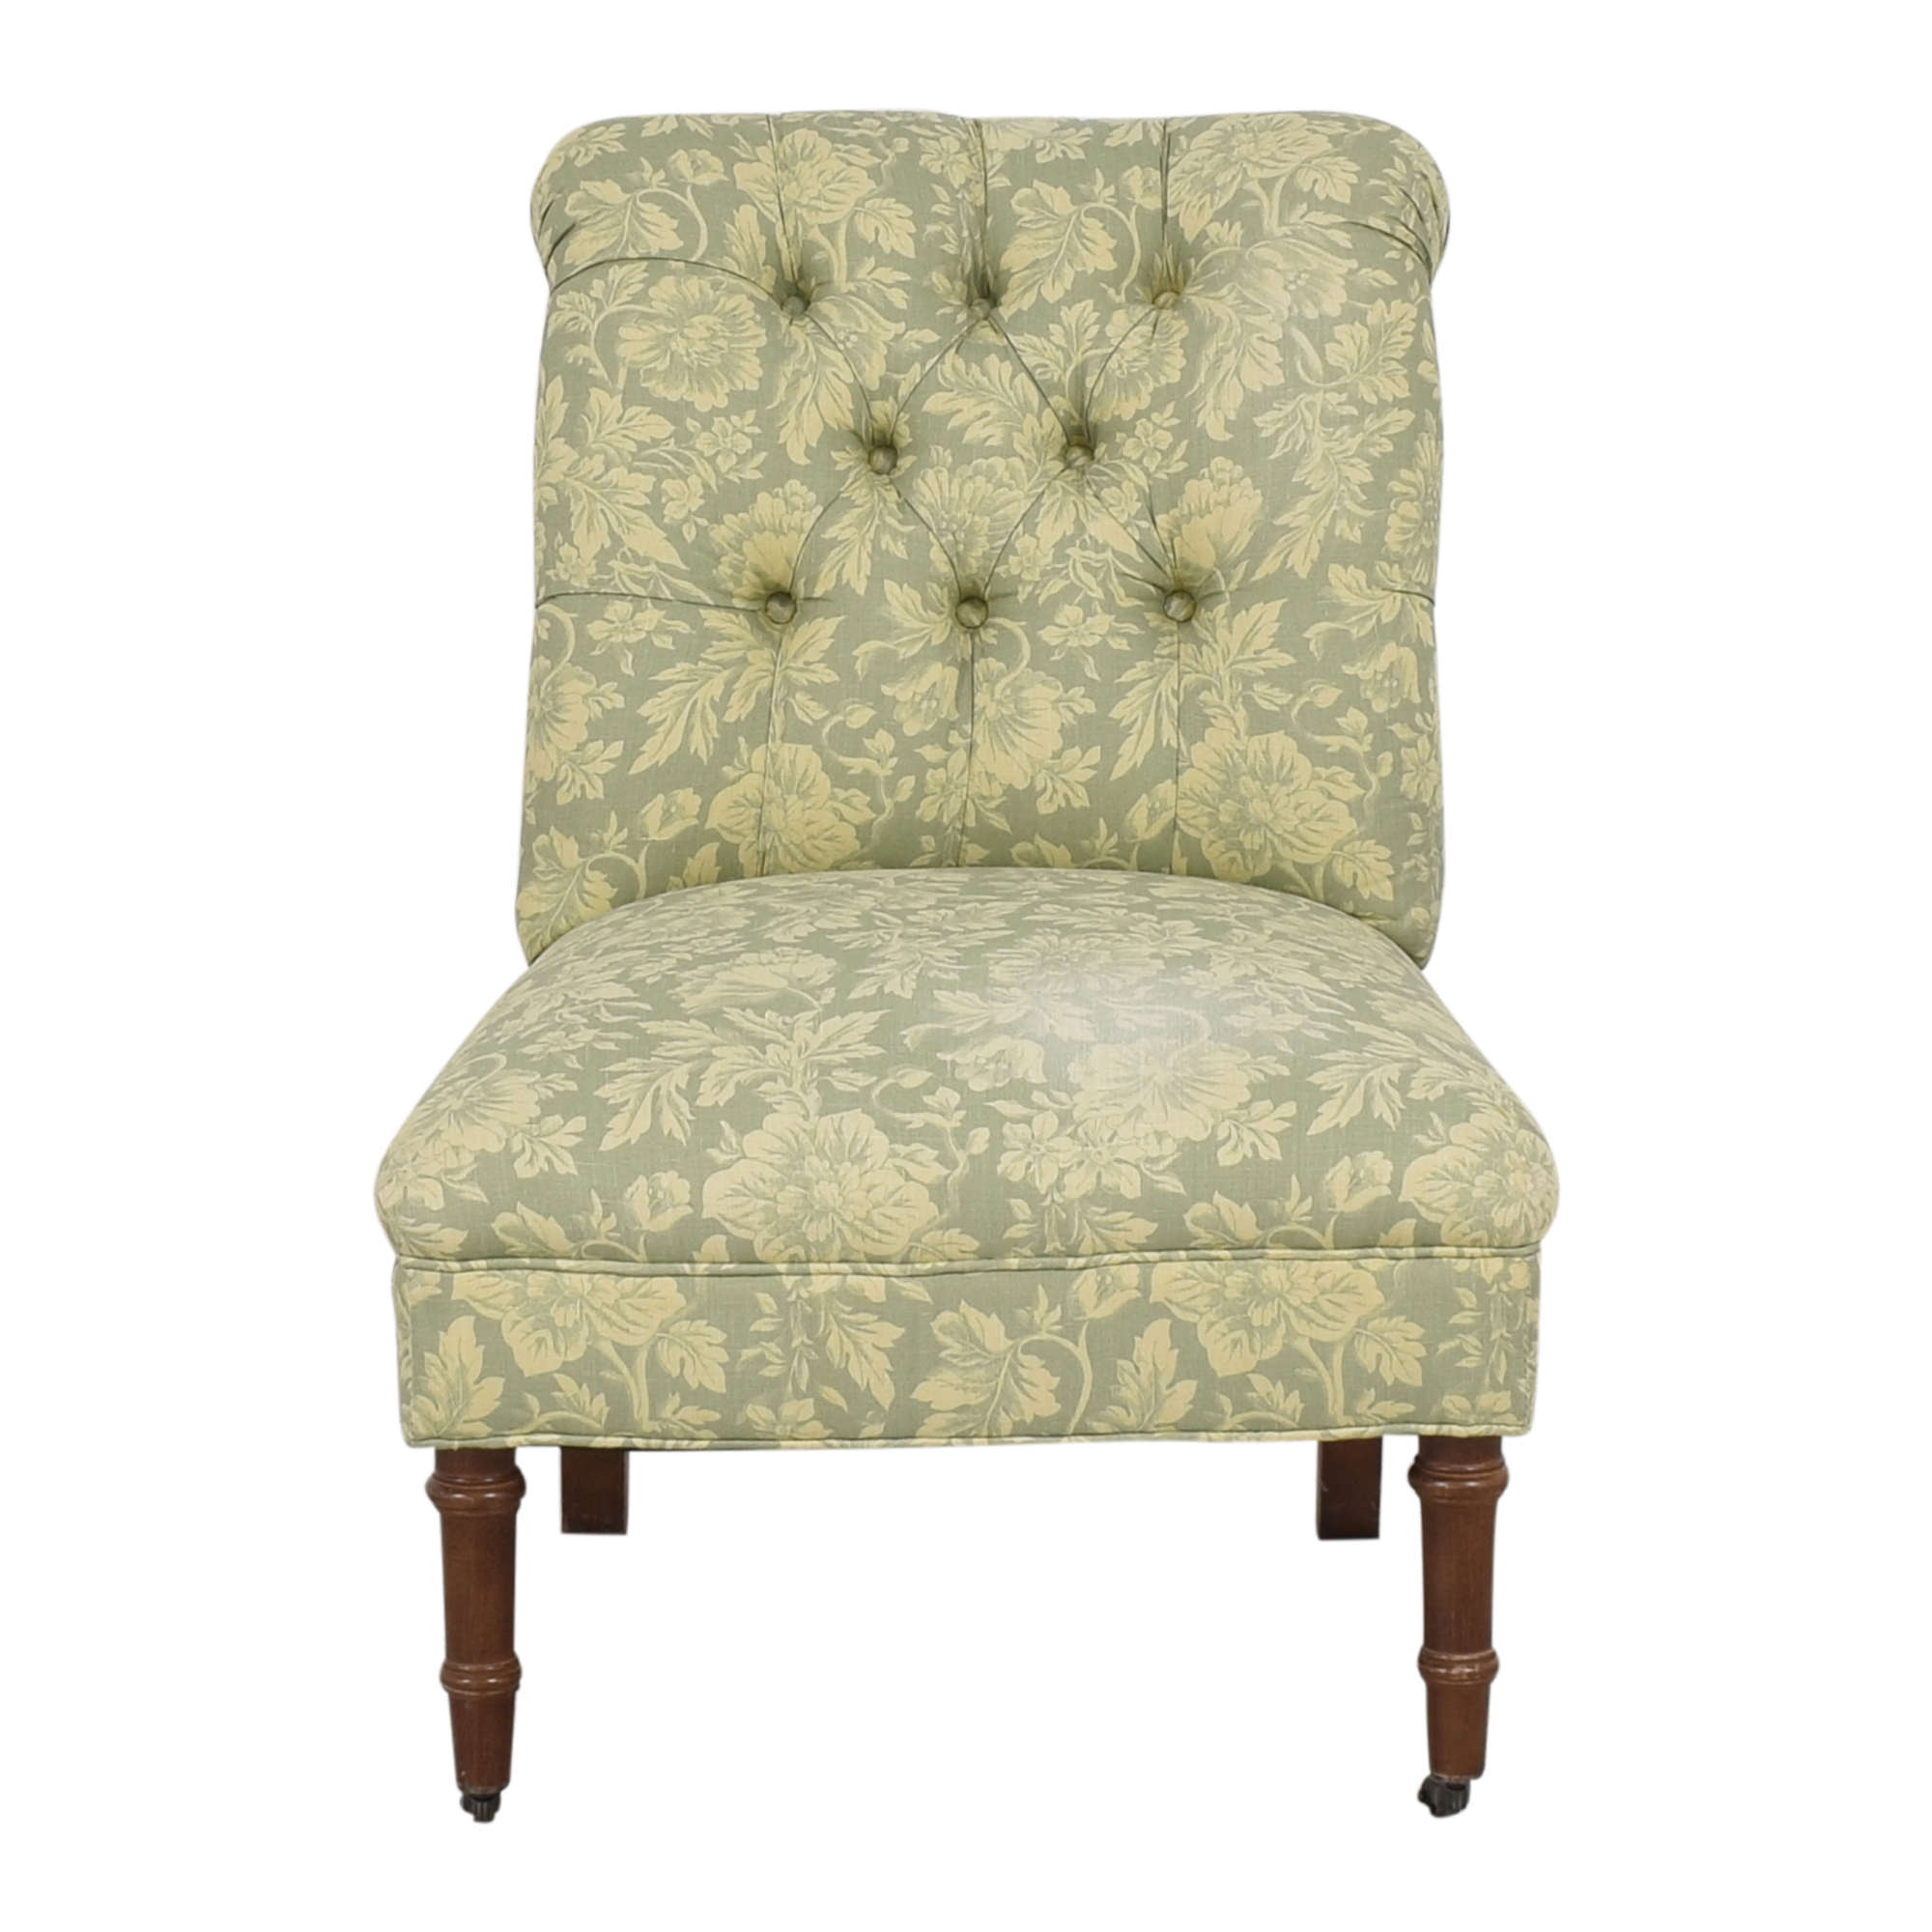 Lee Industries Lee Industries Tufted Armless Accent Chair pa